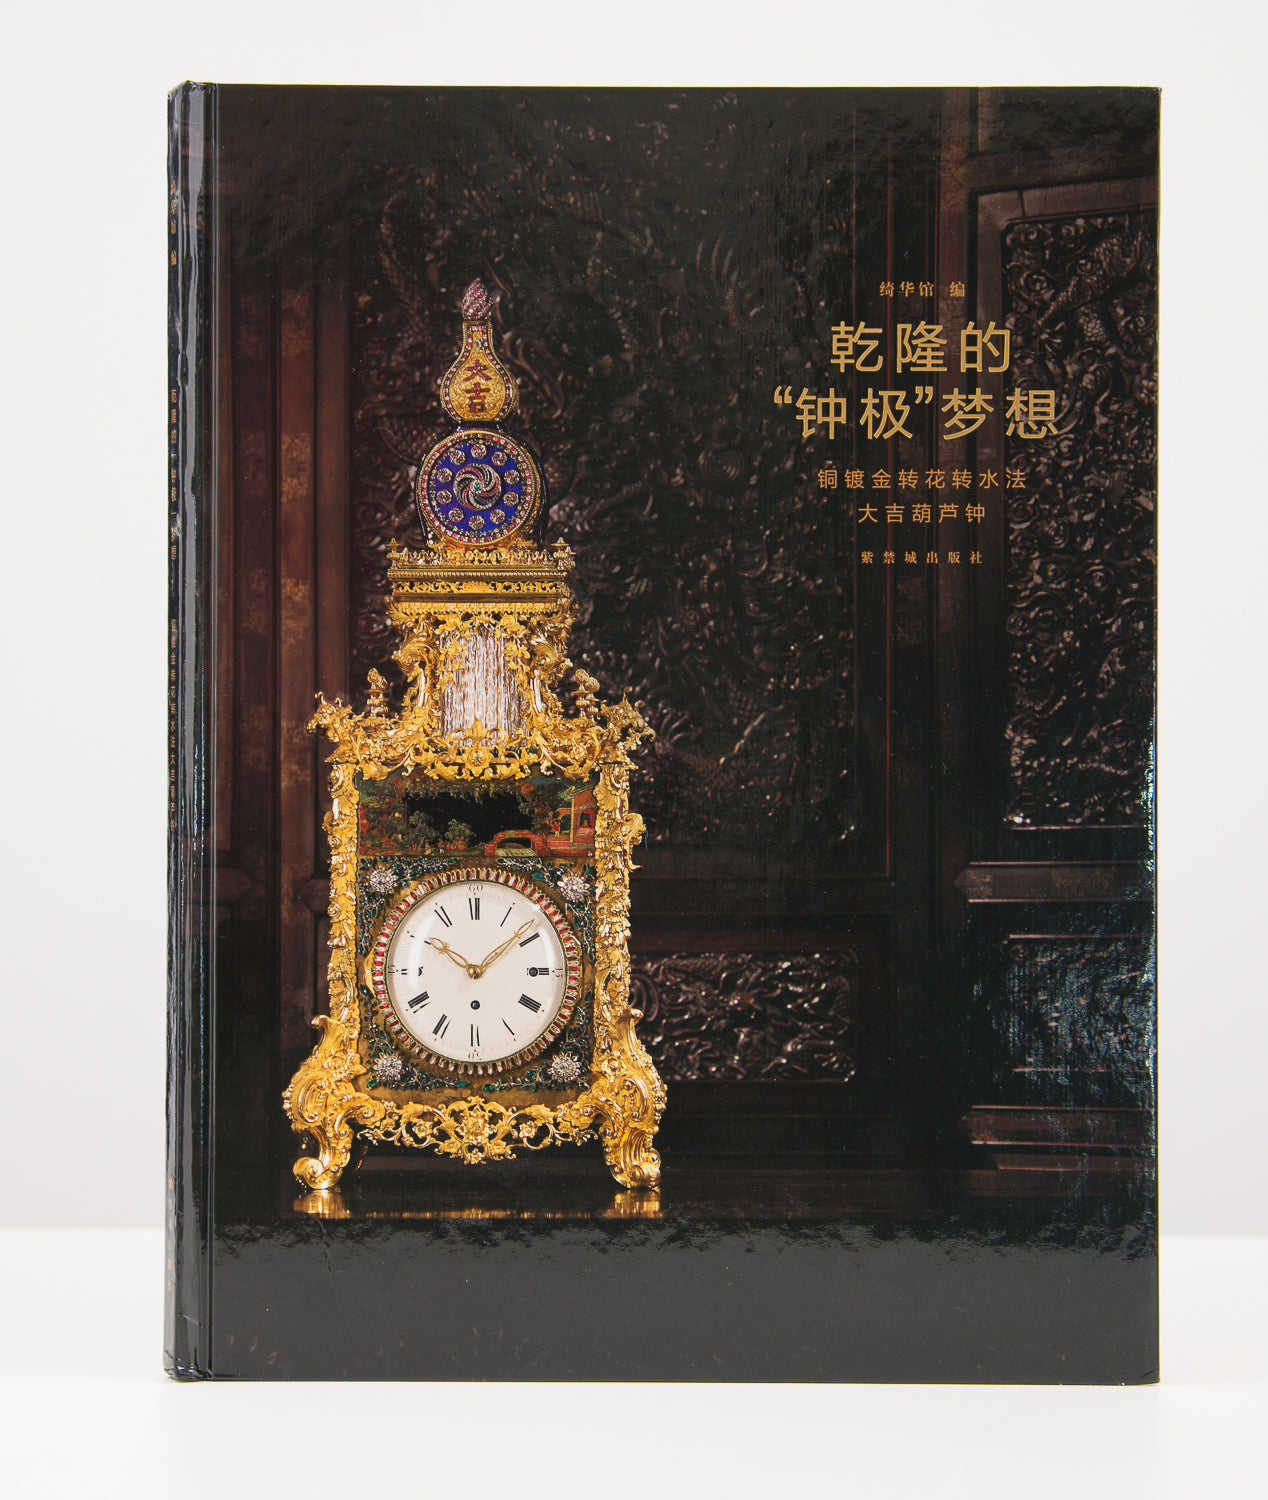 Emperor Qianlong's Clock Dream